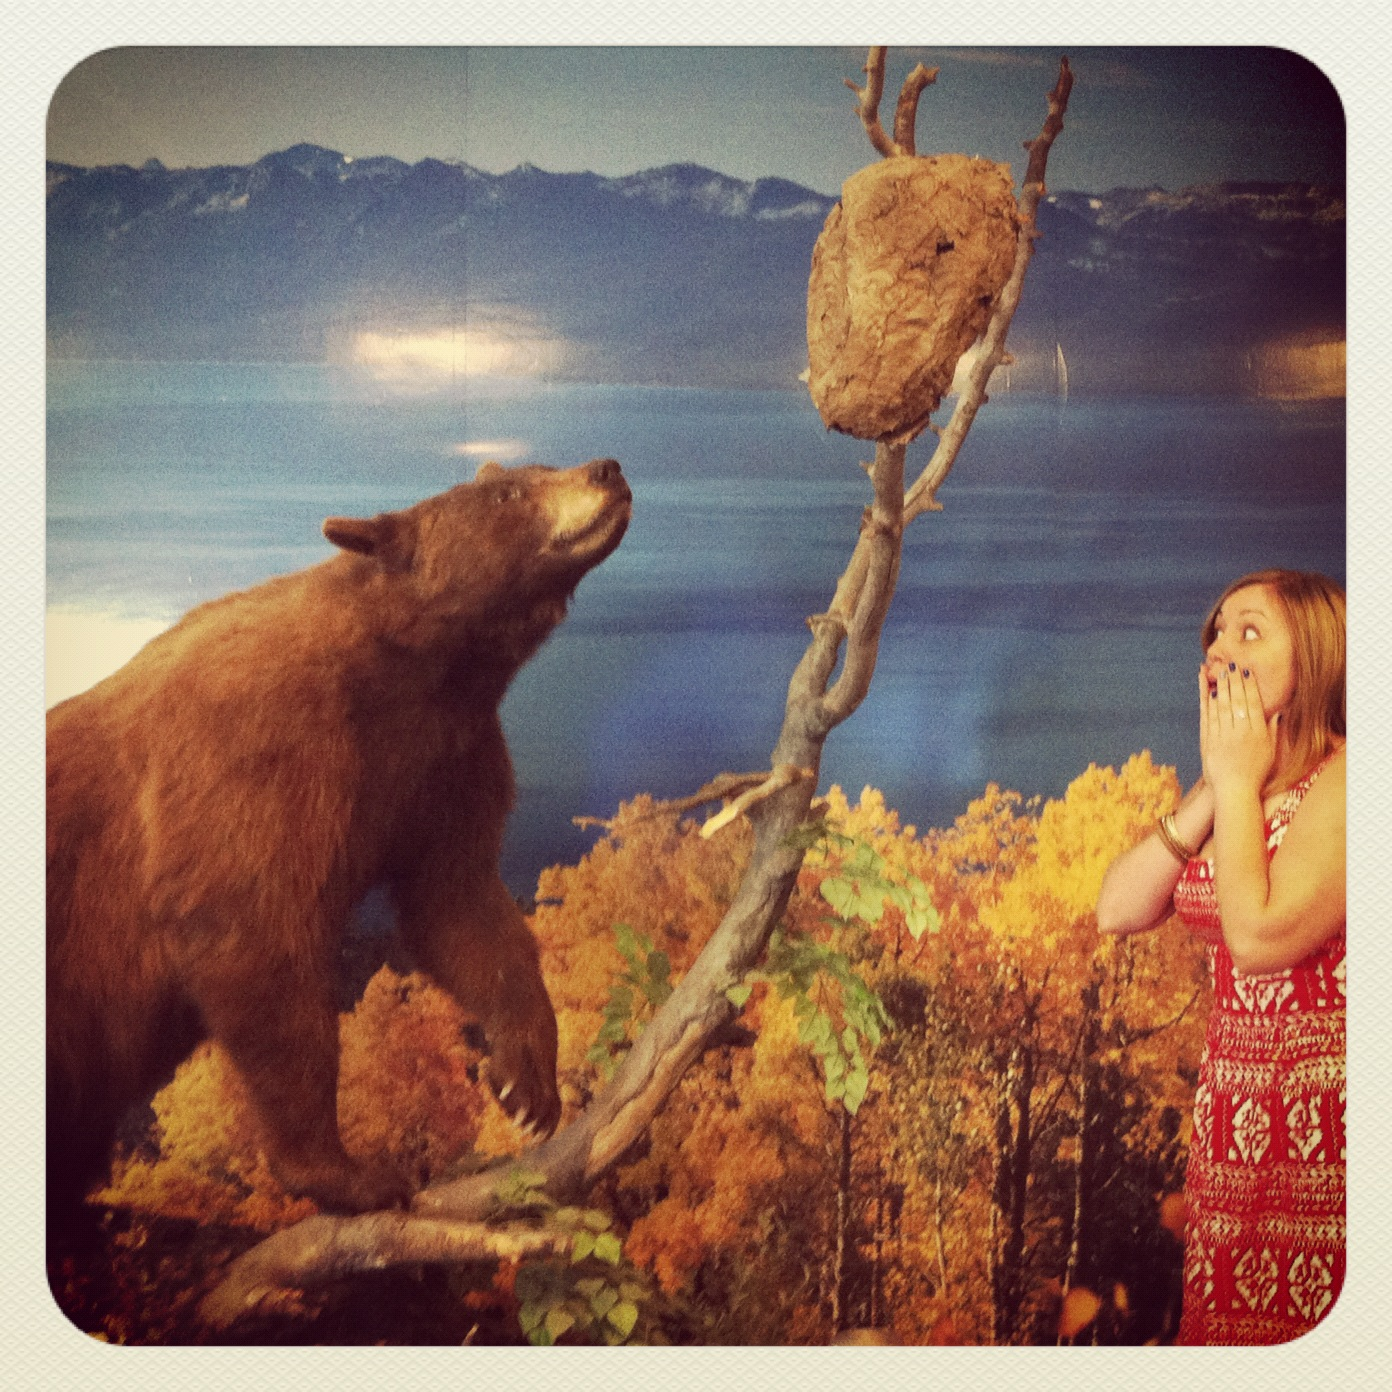 Reno-Tahoe International Airport (watch-out for bears)